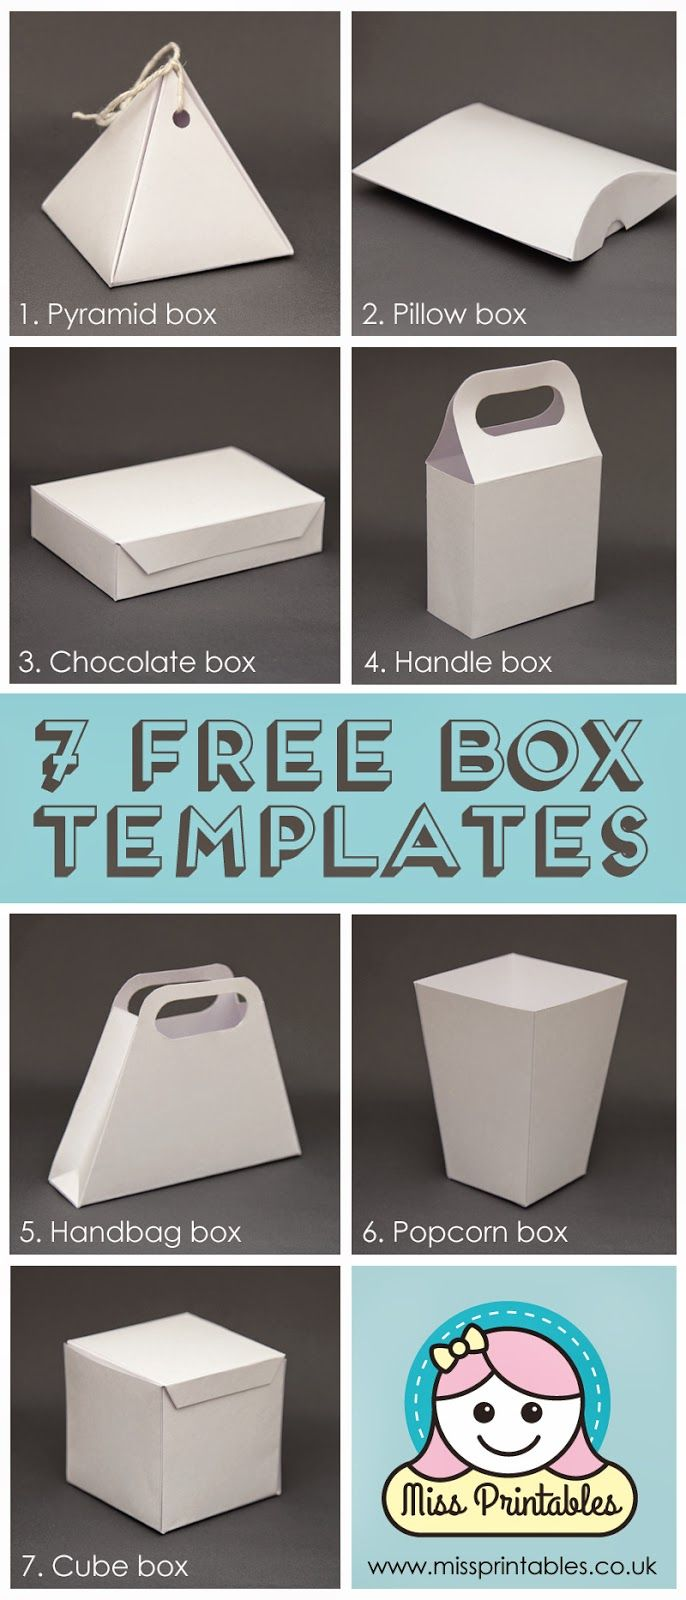 BOX TEMPLATE FREE | Crafts | Pinterest | Box templates, Template and Box